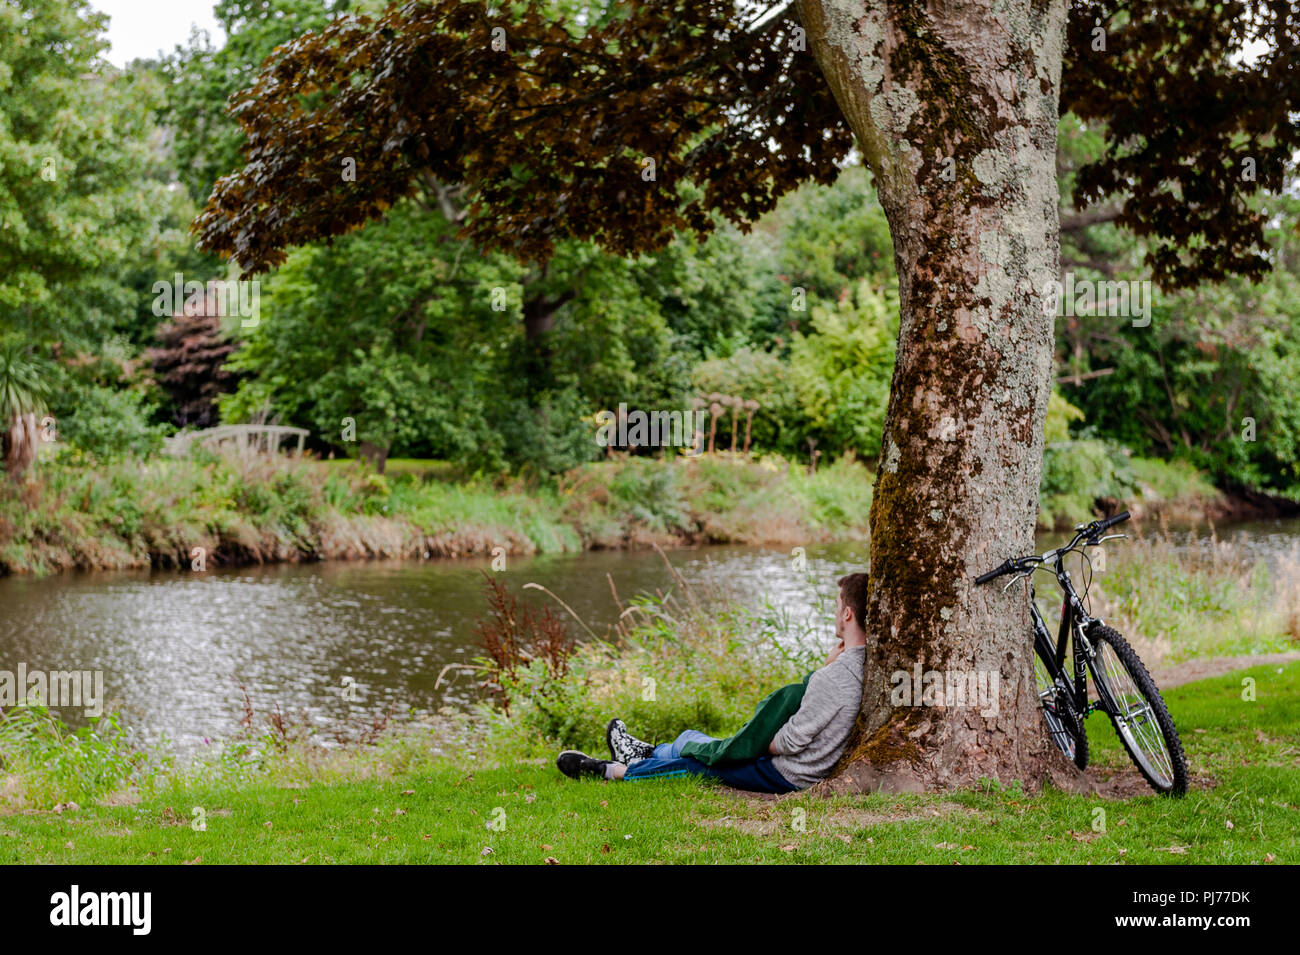 Young couple leaning against a tree in Fitzgerald Park, Cork, Ireland having a romantic moment. Stock Photo